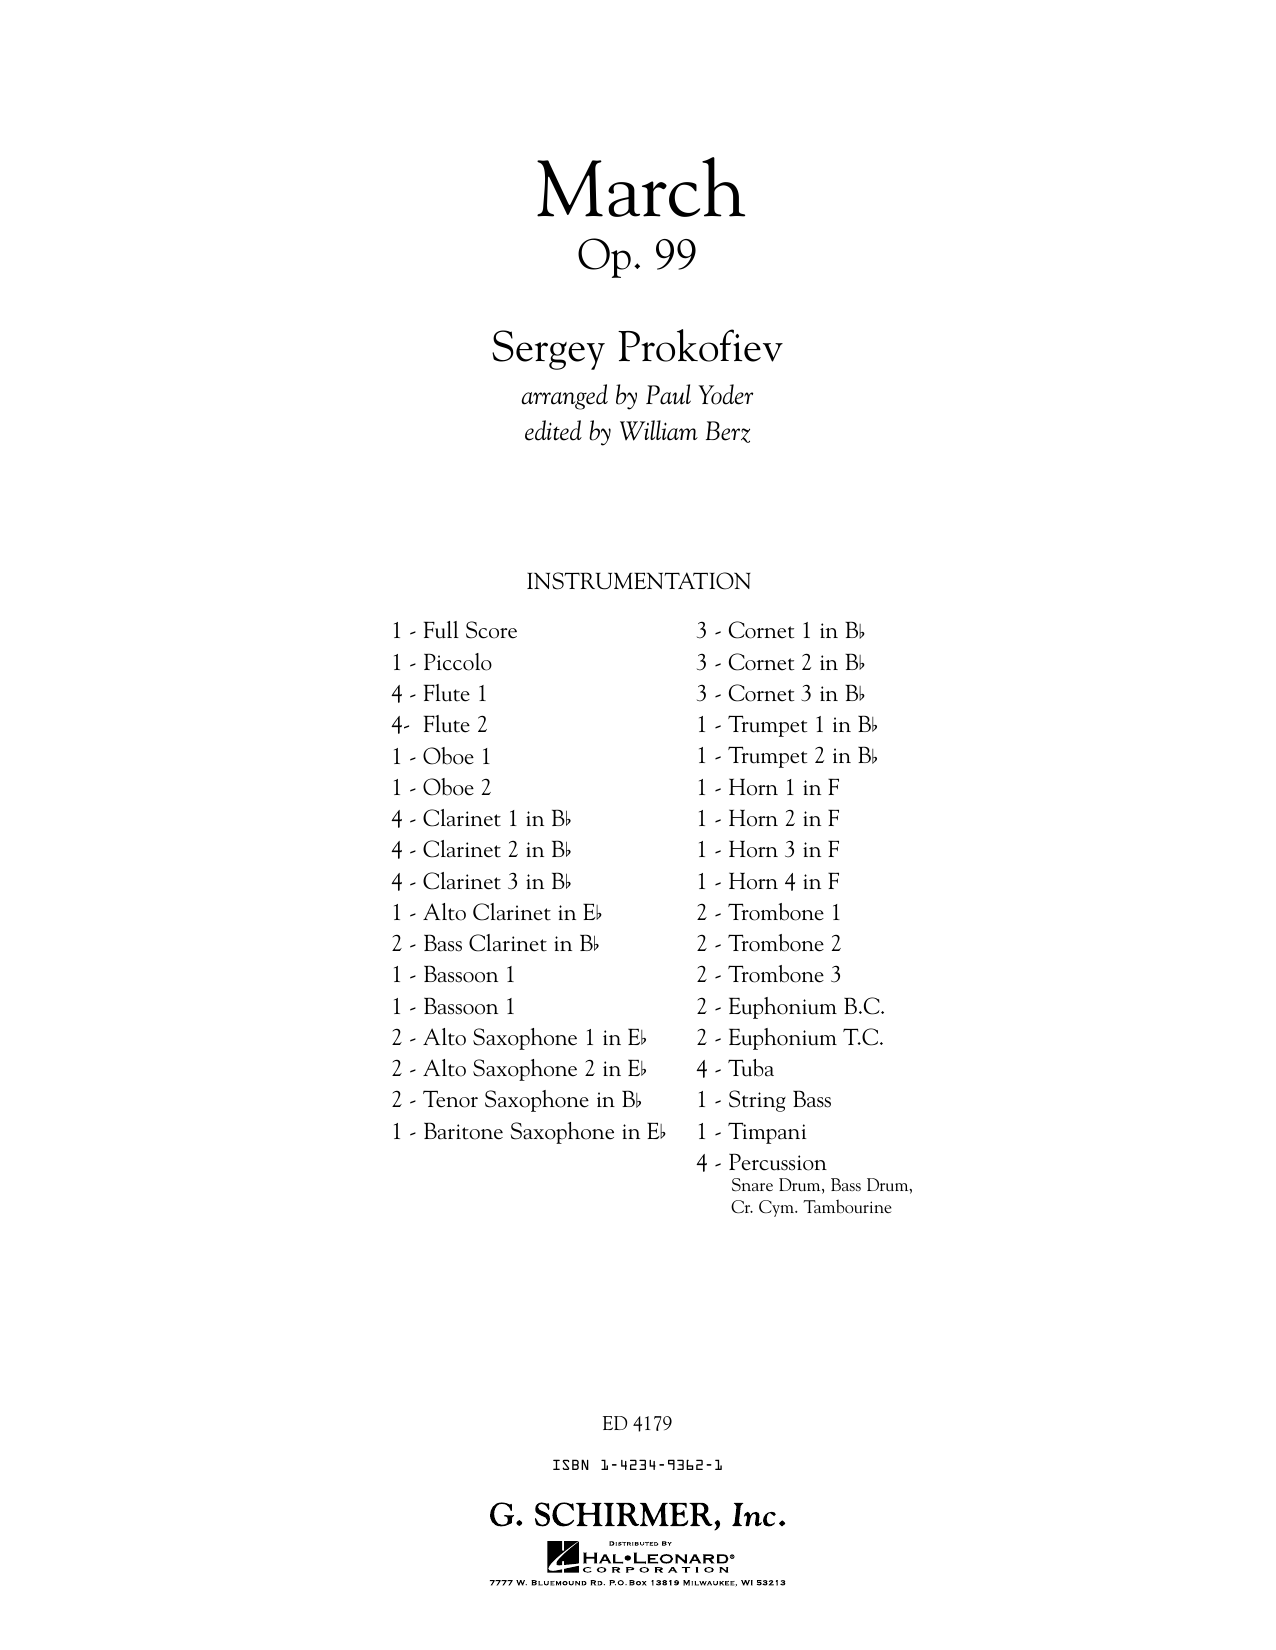 March, Op. 99 - Conductor Score (Full Score) (Concert Band)